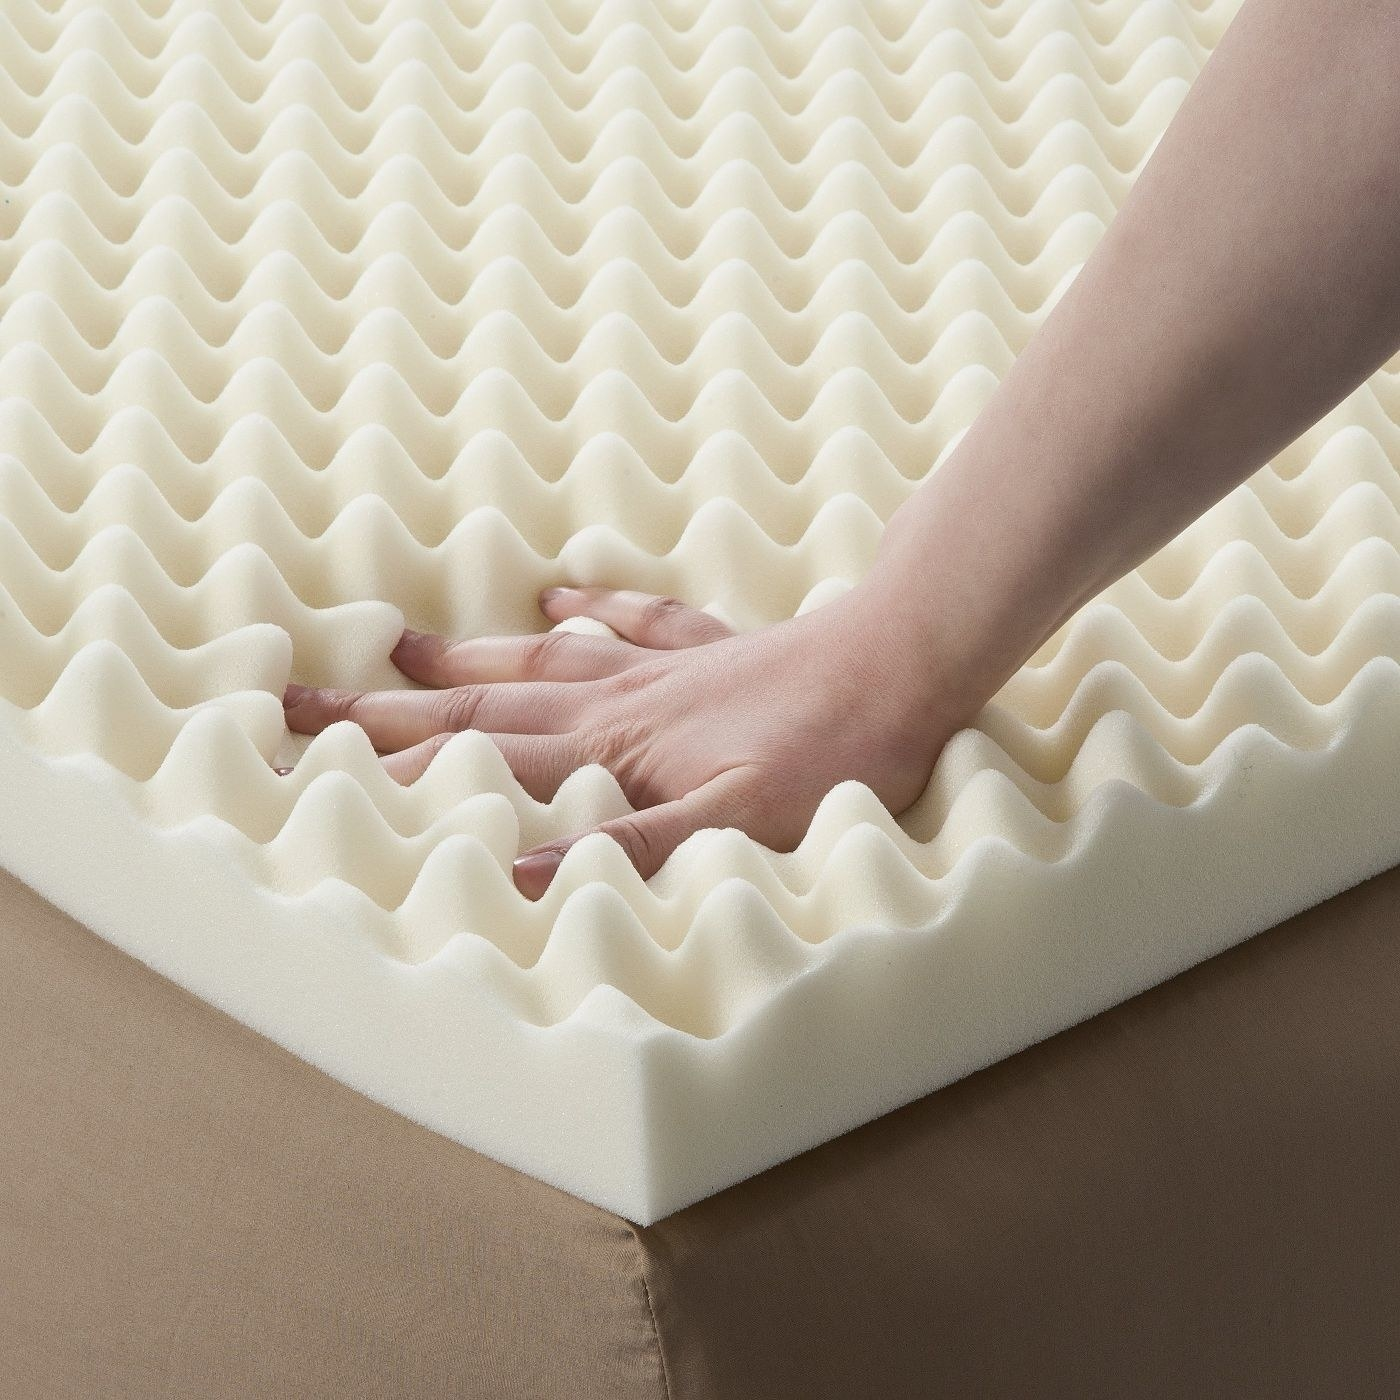 The foam topper, with someone pressing their hand into it to show how soft it is